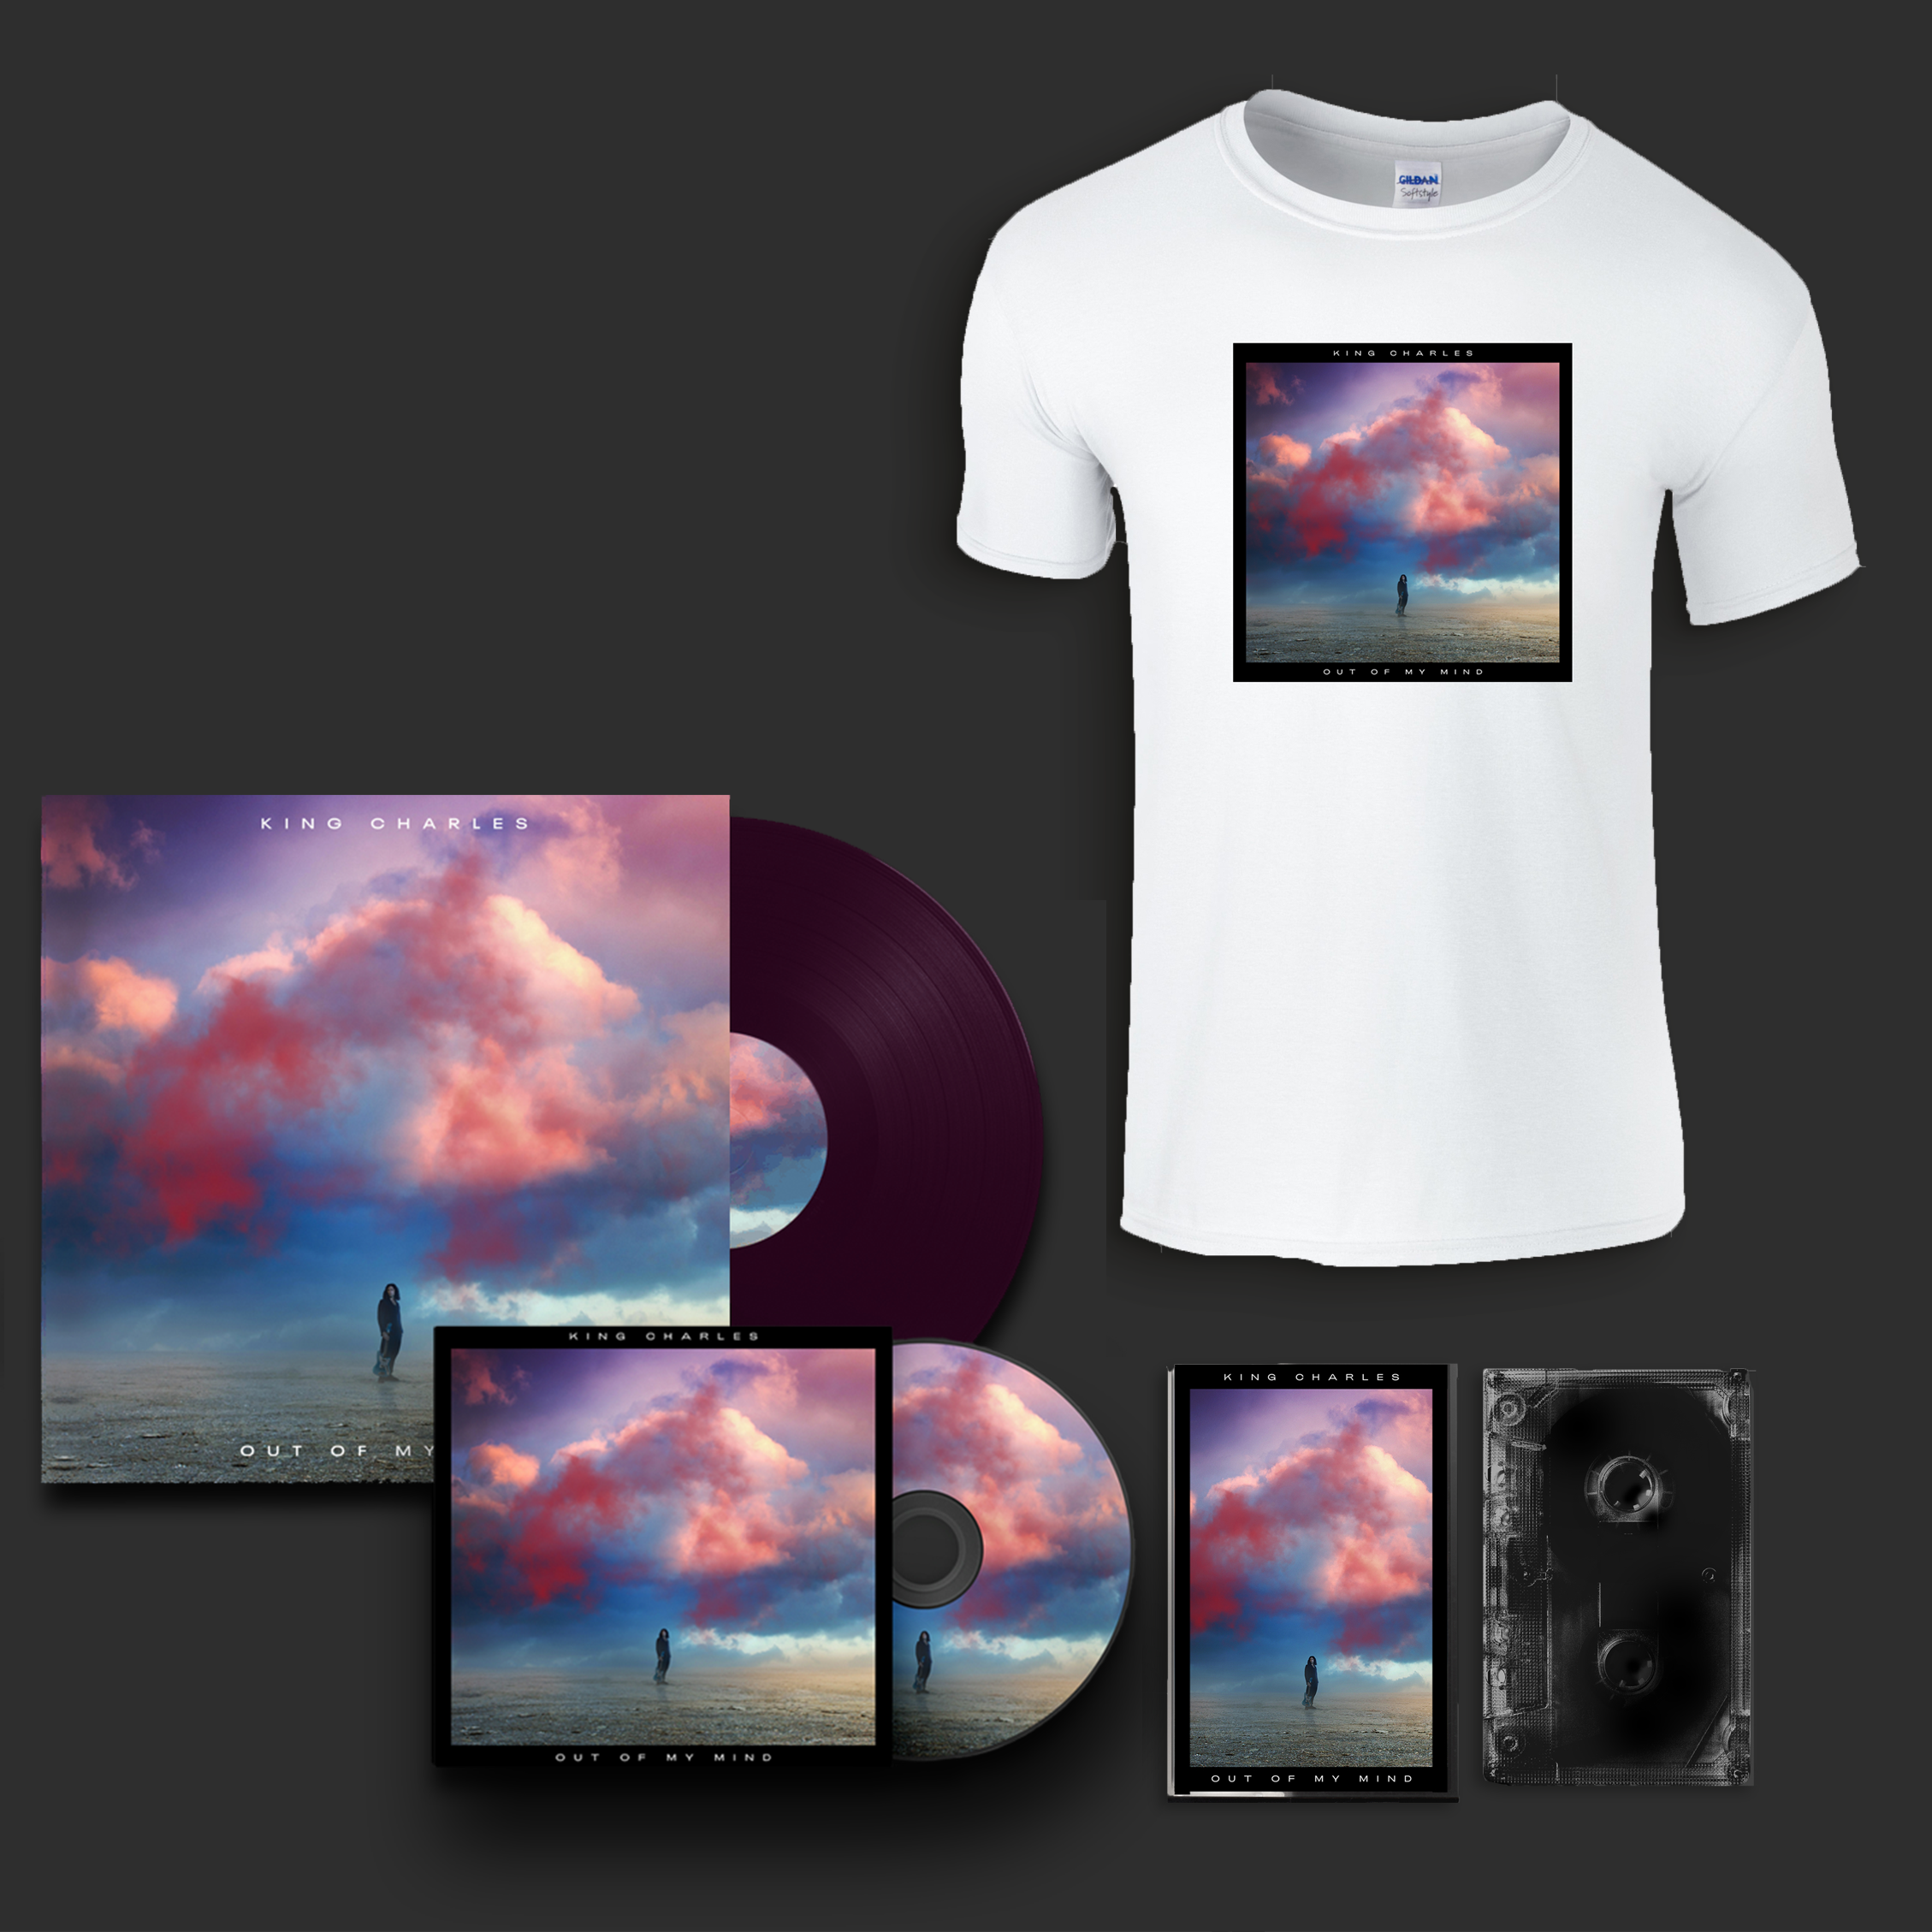 Buy Online King Charles - Out Of My Mind Album + T-Shirt Bundle